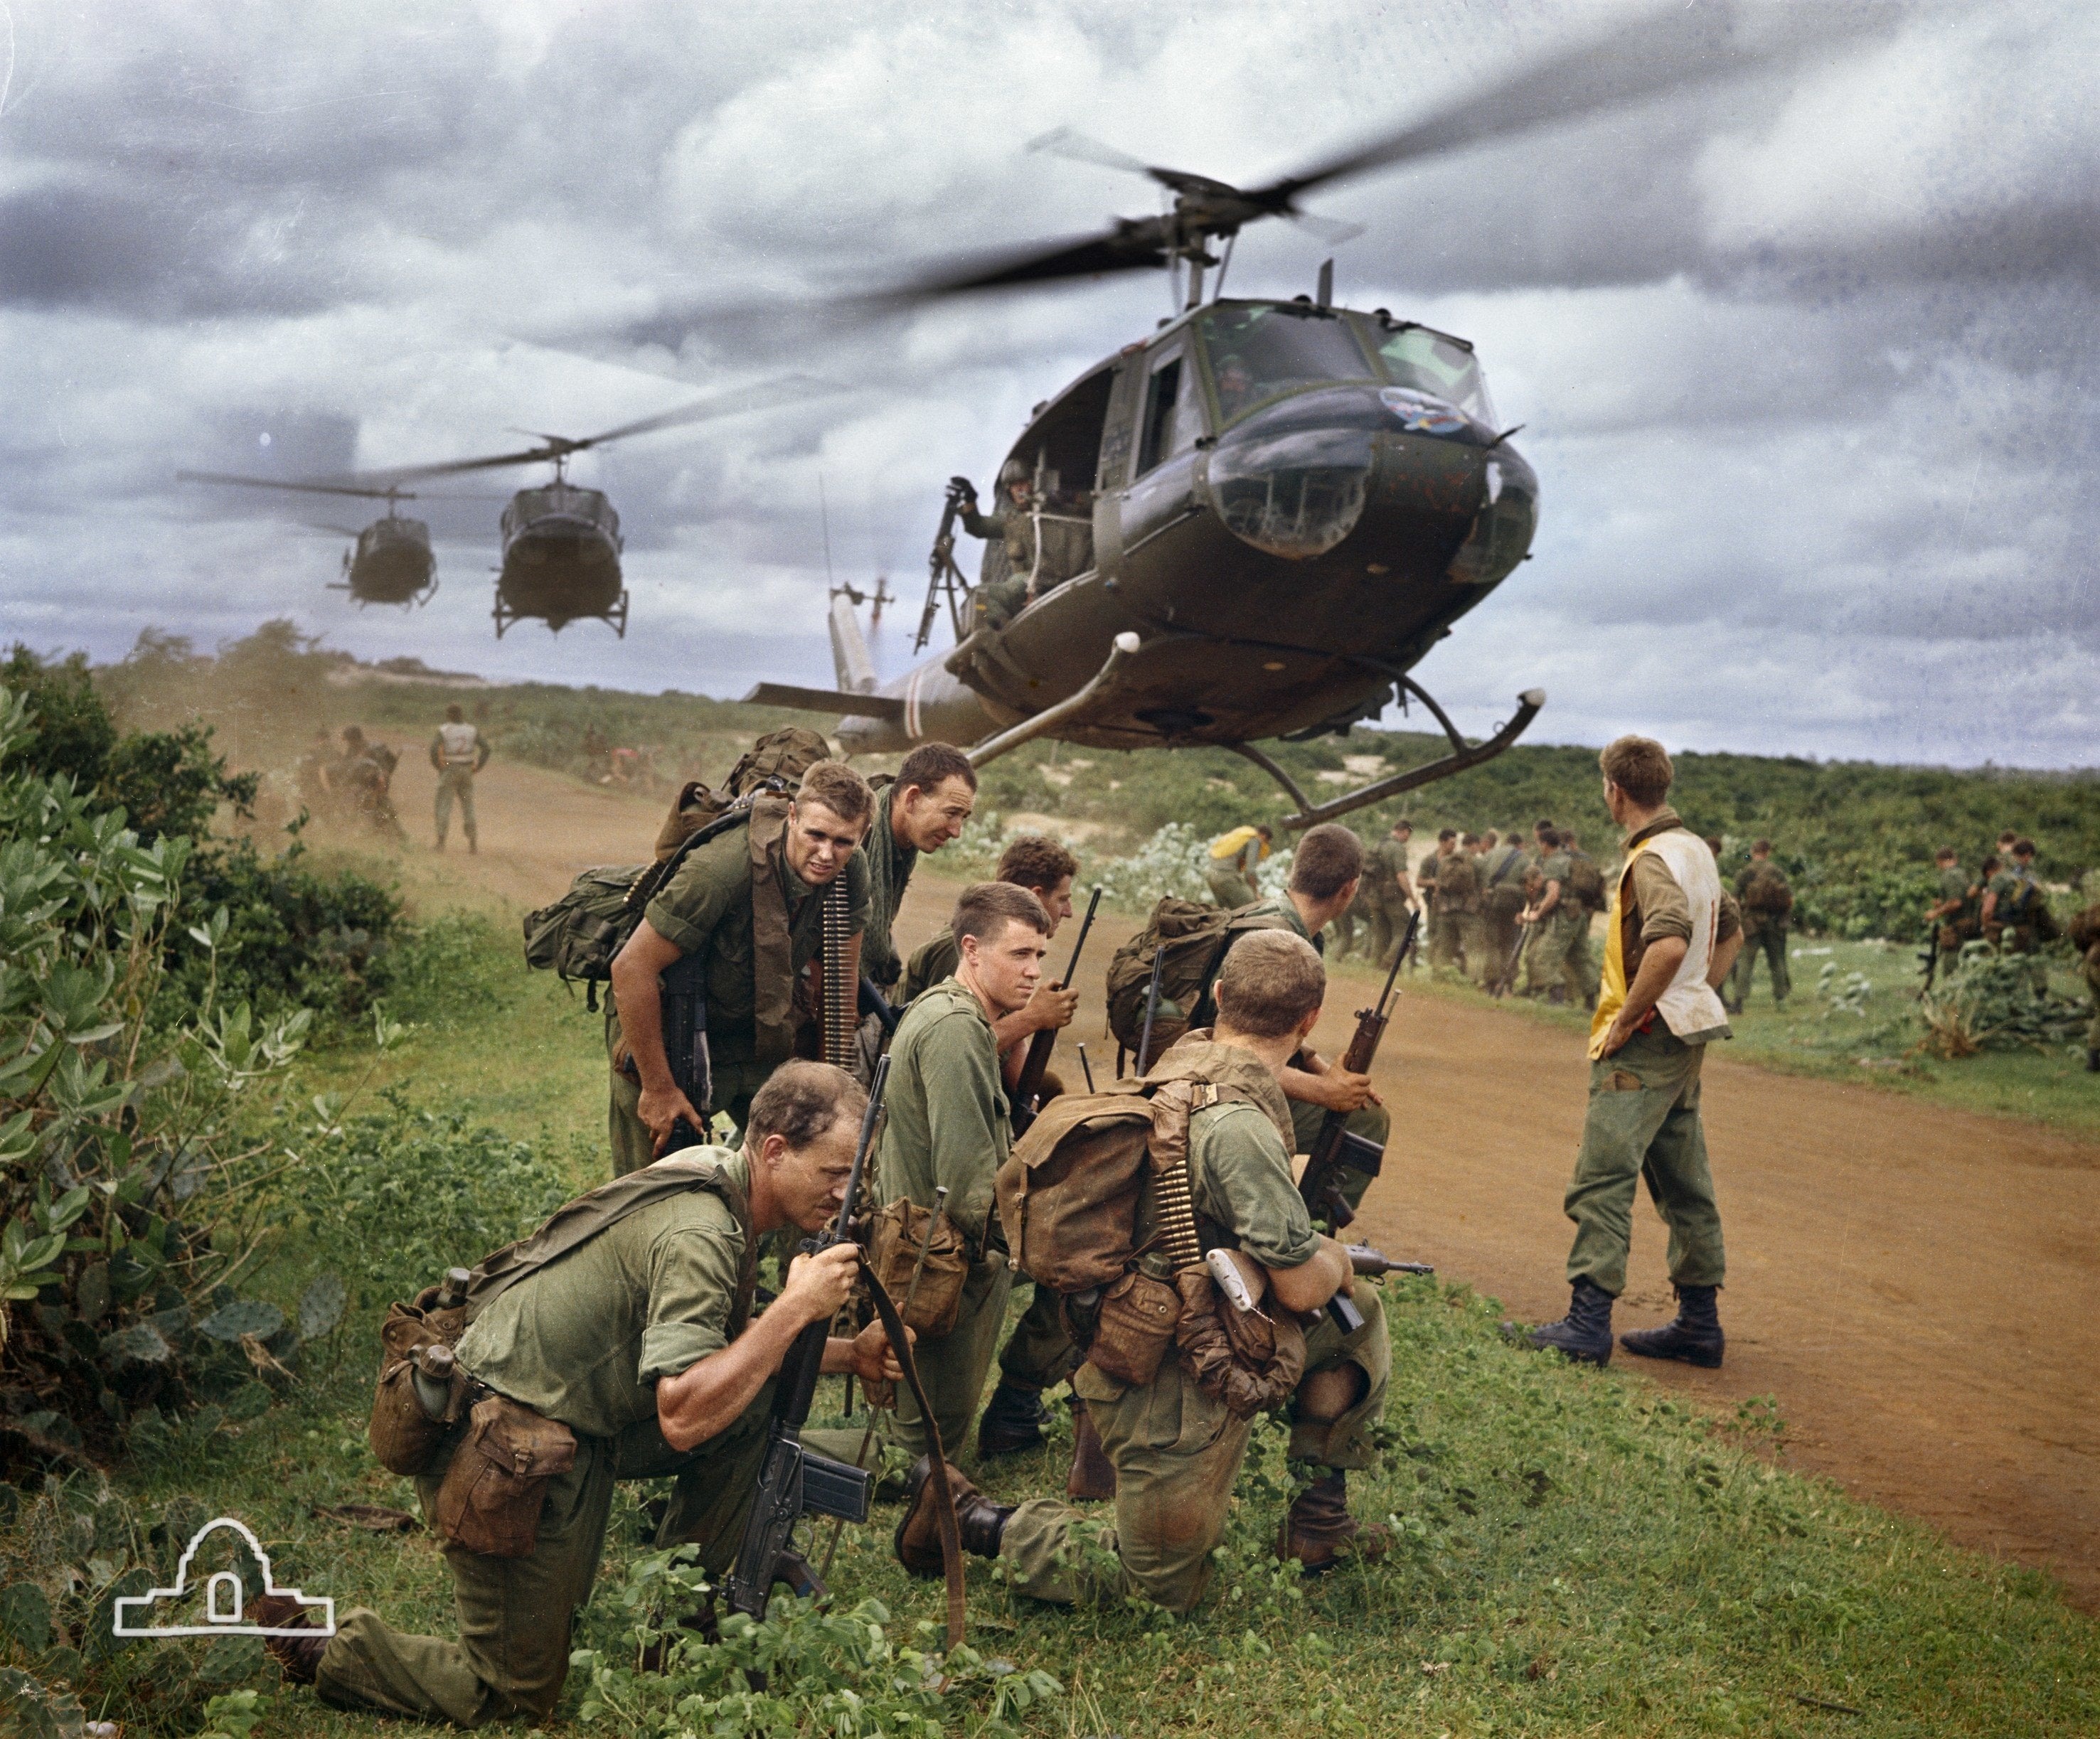 Why Australian special forces spent 10 days in Vietnam without saying a word